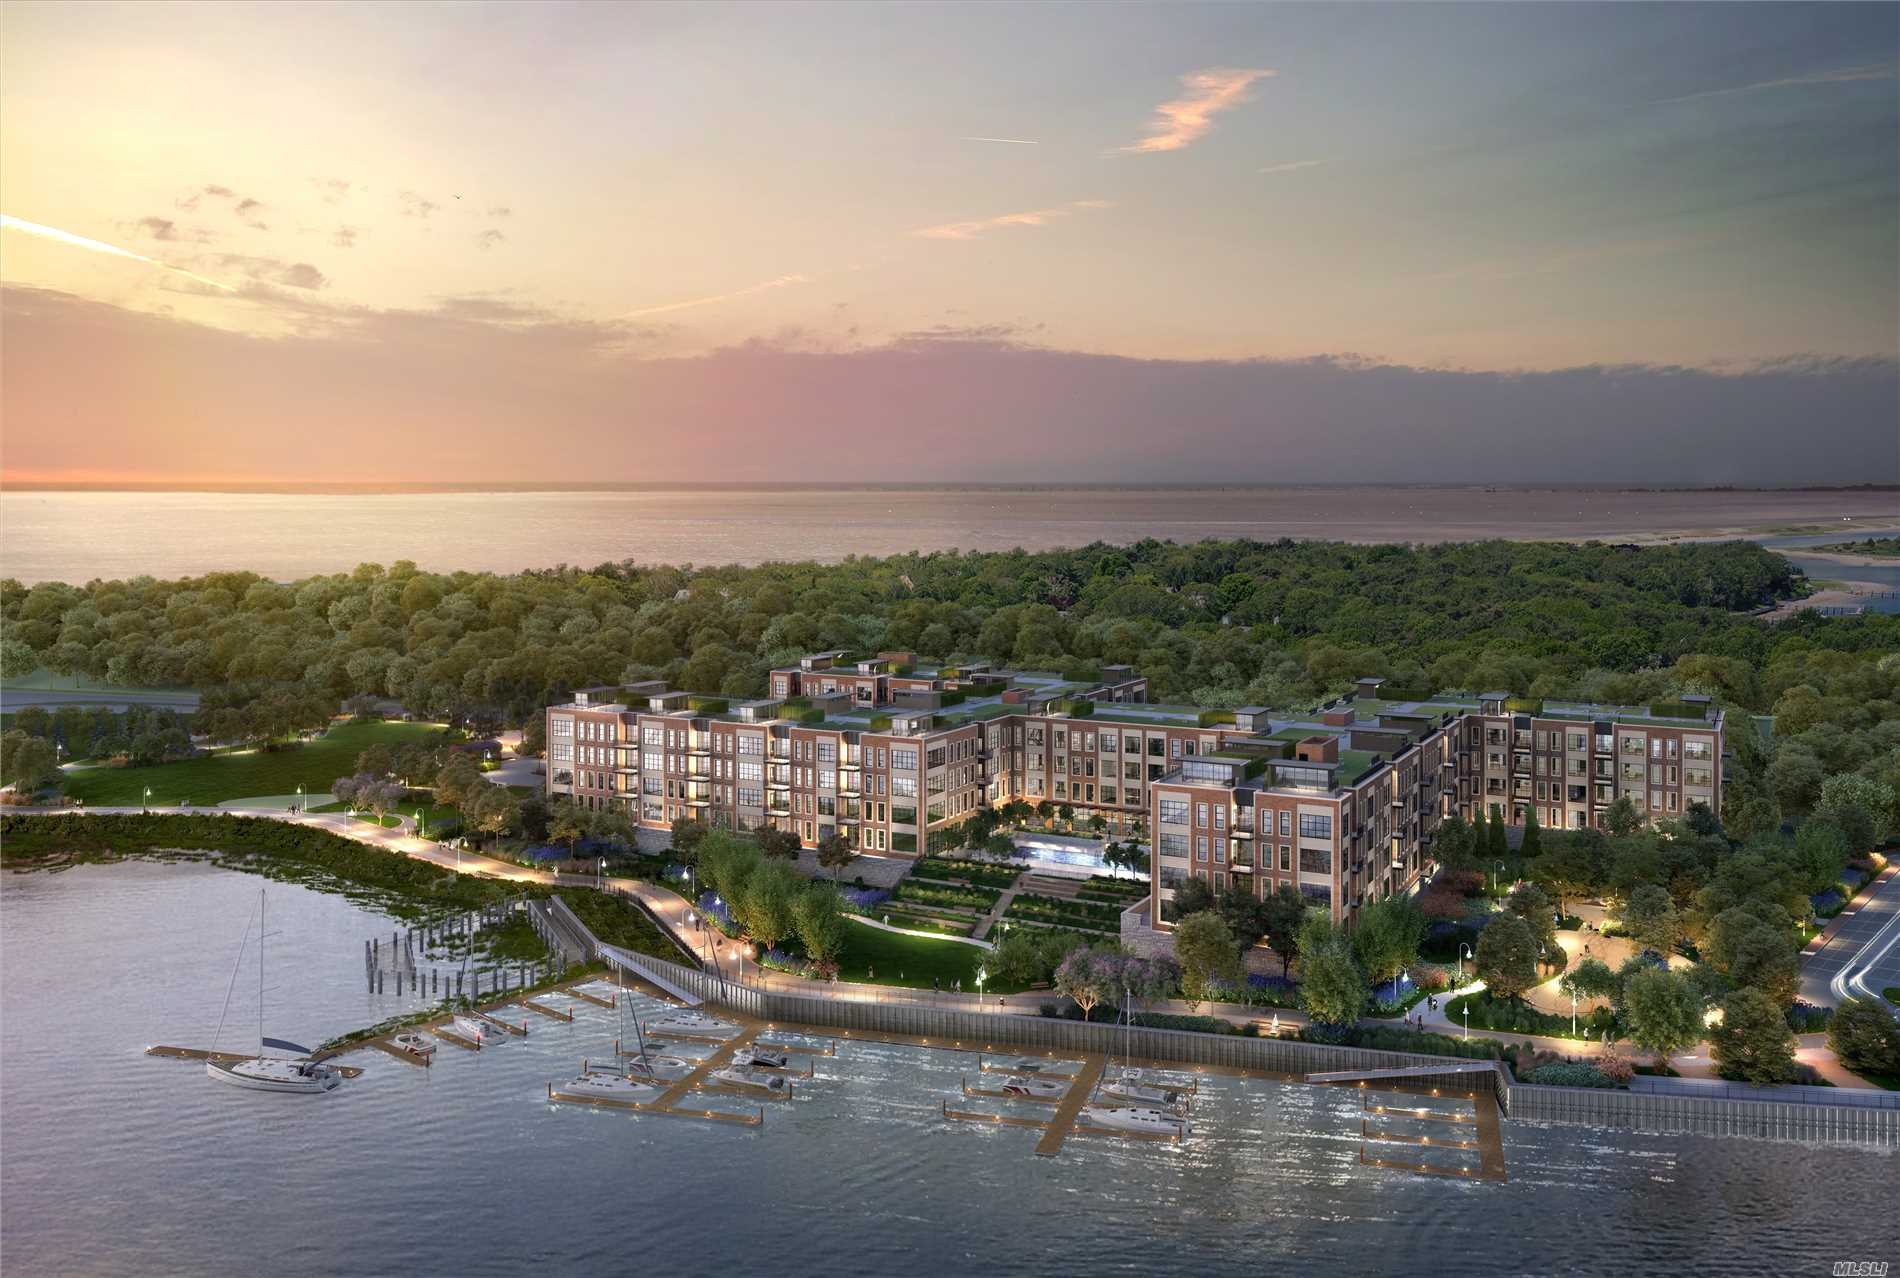 Property for sale at 100 Garvies Point Road # 1134, Glen Cove NY 11542, Glen Cove,  New York 11542